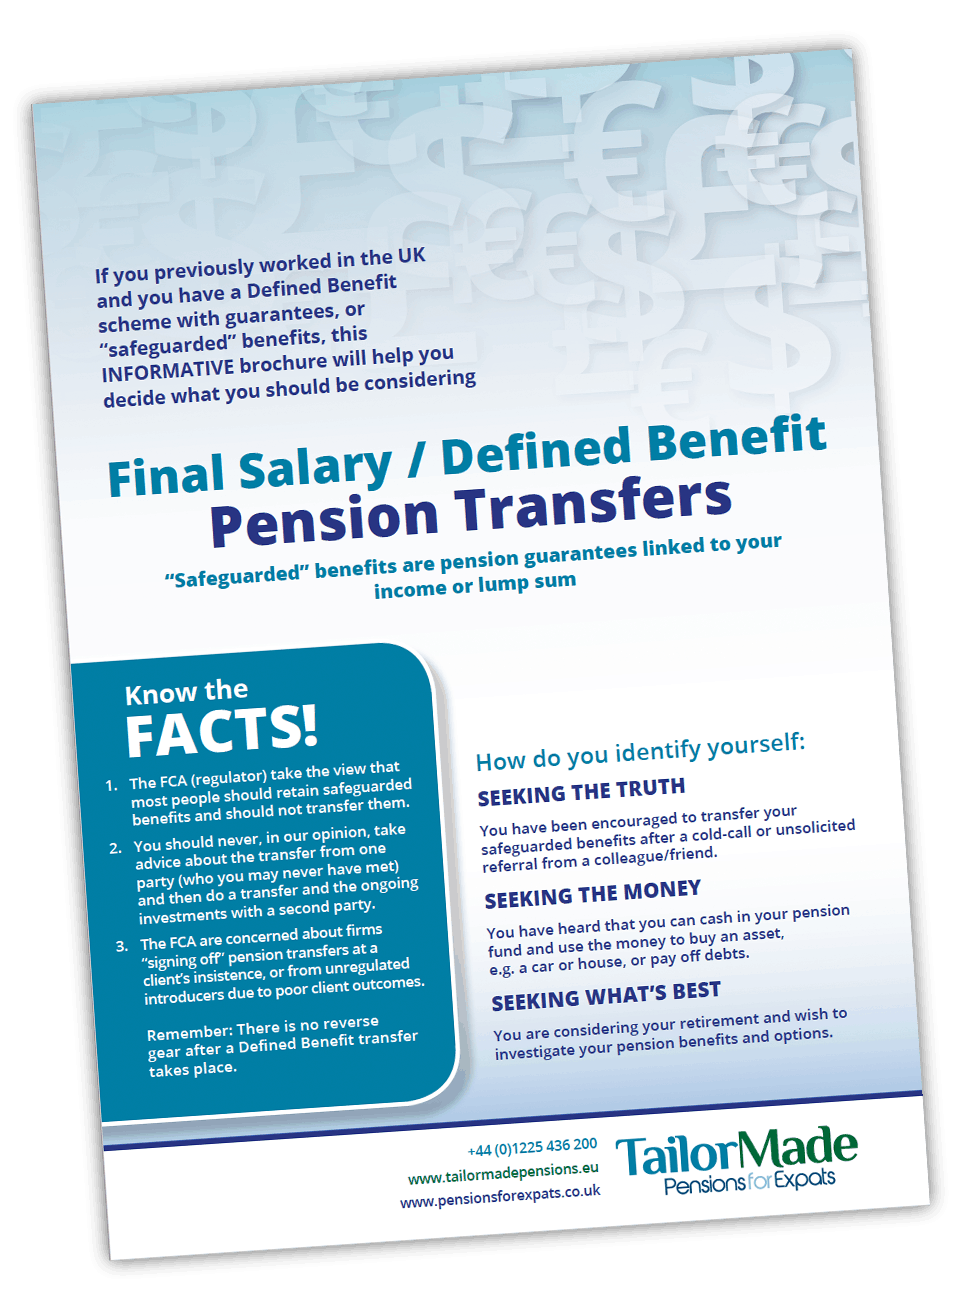 British Pensions Defined Benefit Transfers Information For France Brochure